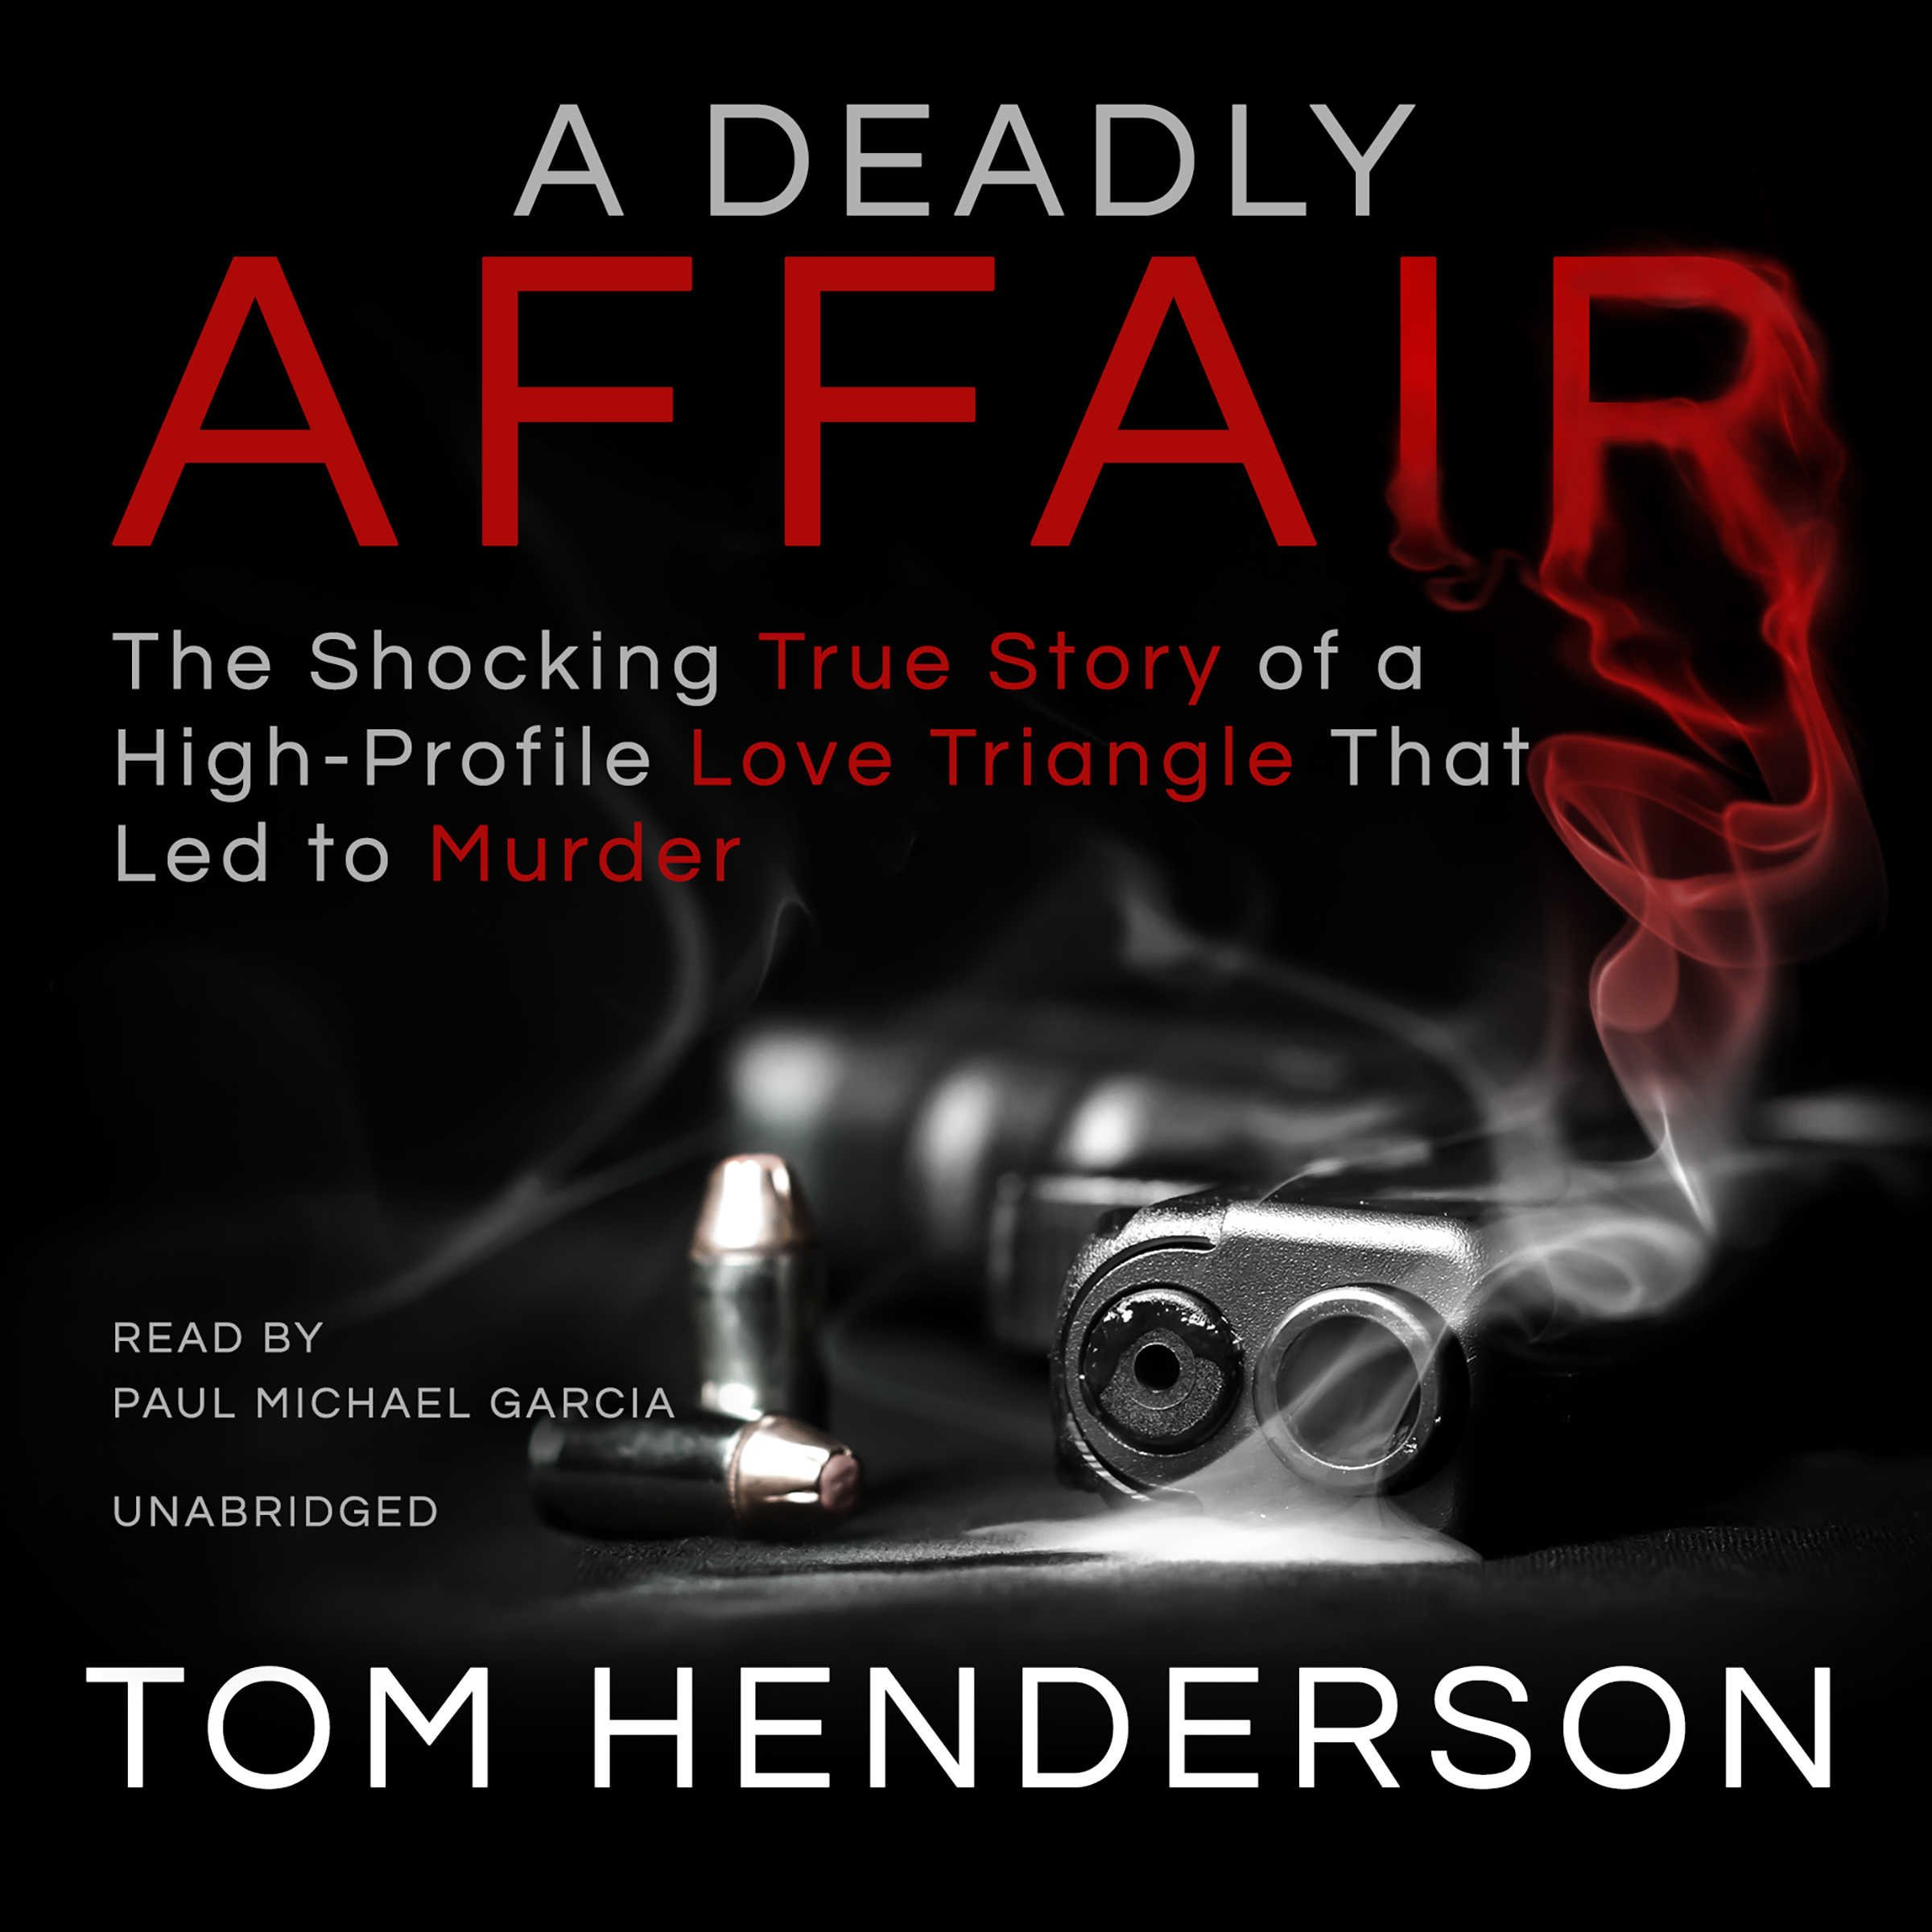 A Deadly Affair: The Shocking True Story of a High Profile Love Triangle That Led to Murder